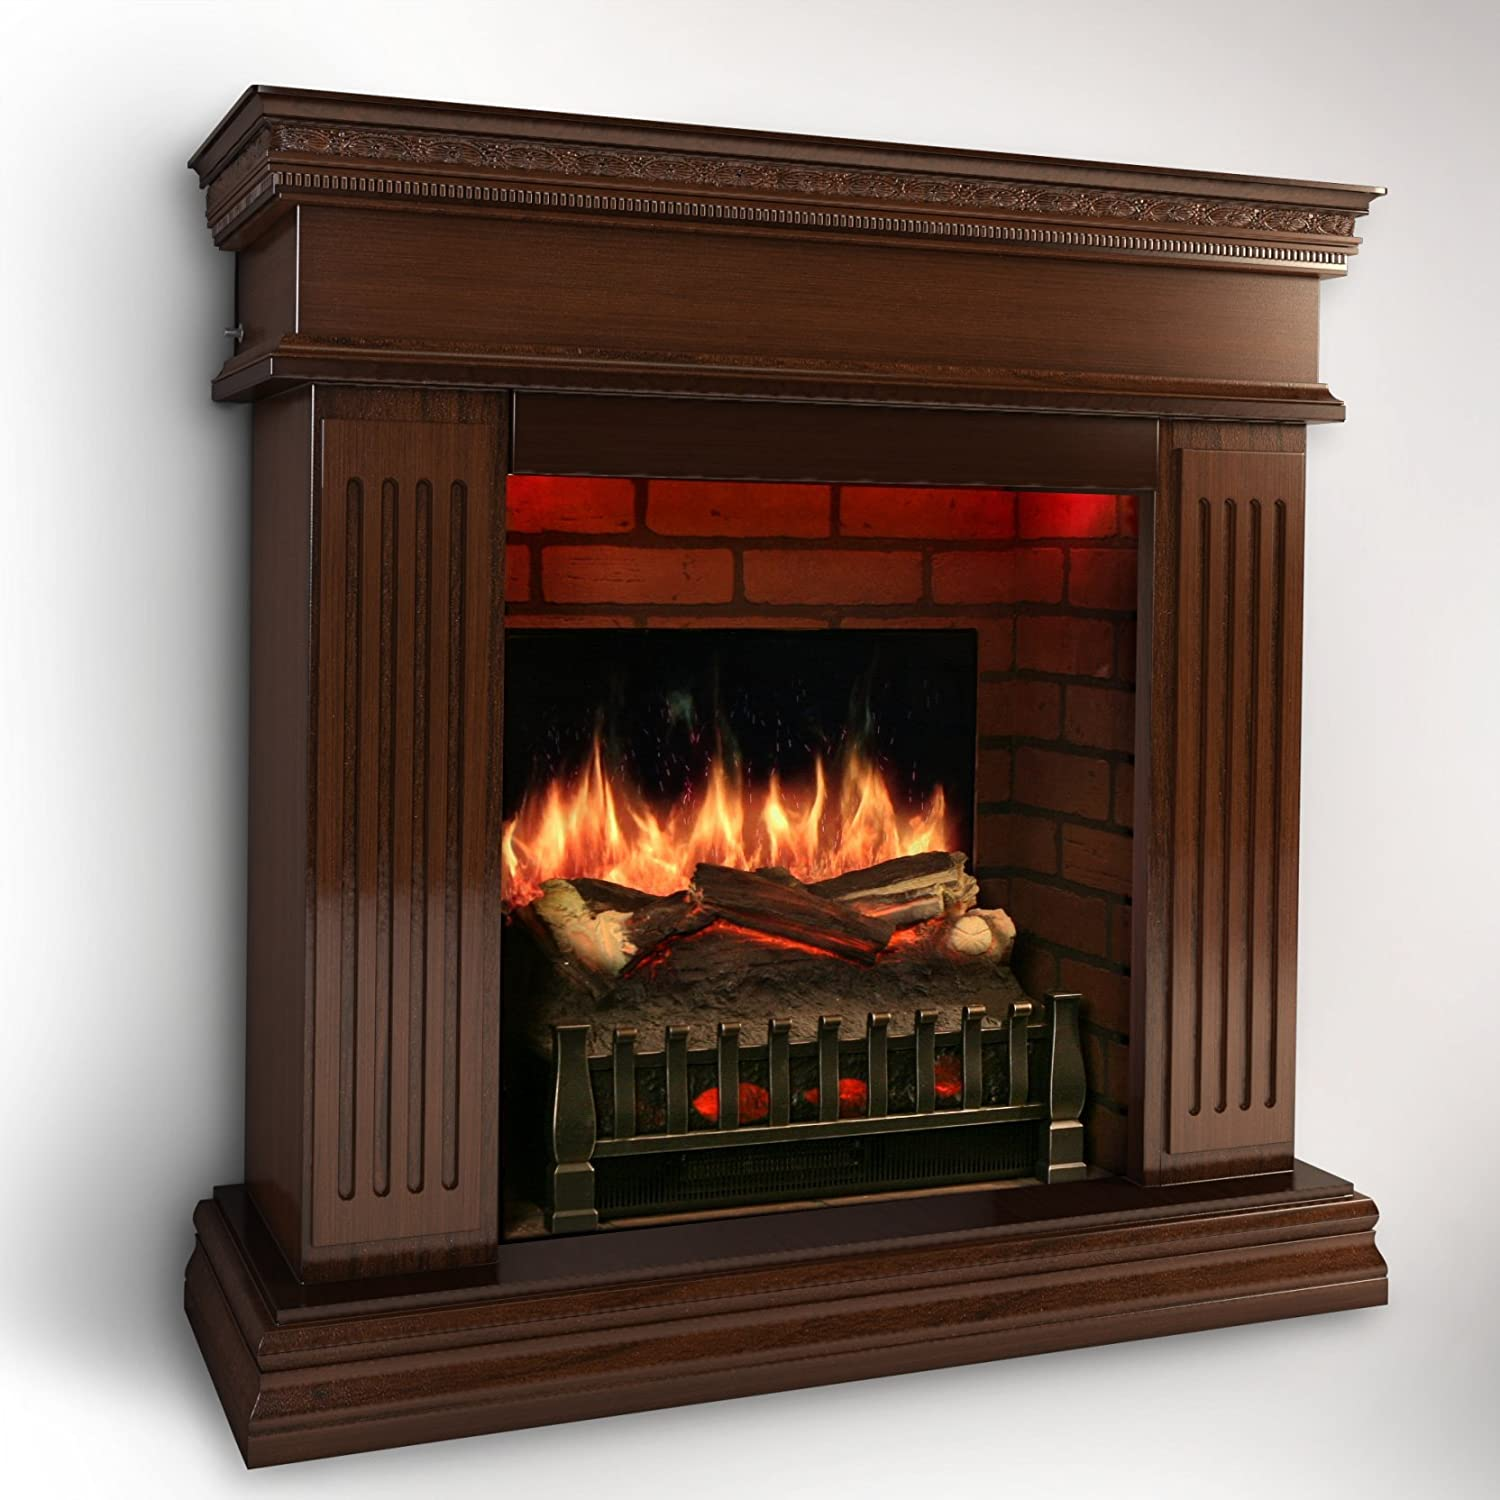 amazon com magikflame electric fireplace w realistic flame effects rh amazon com